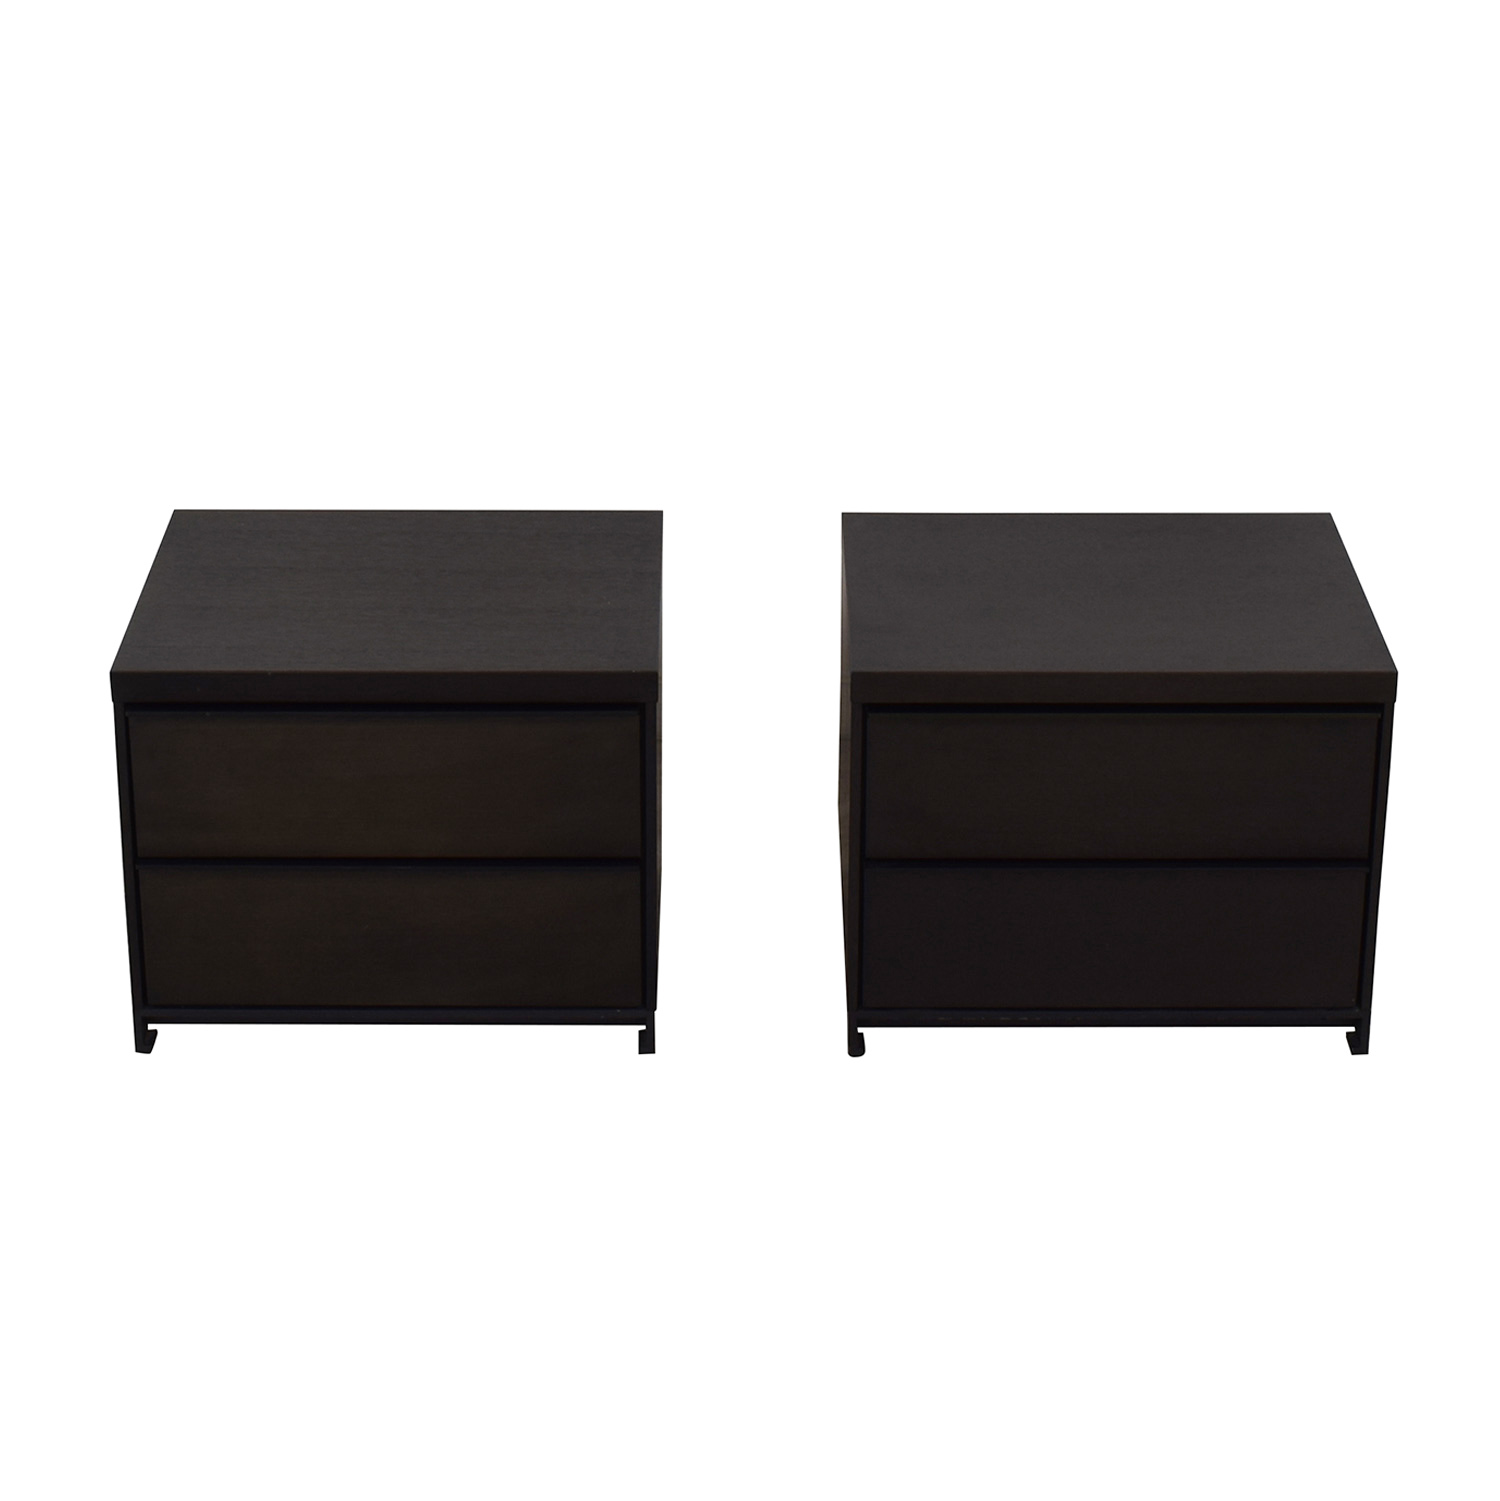 Tui Lifestyle Grey Oak Two Drawer Night Stands used